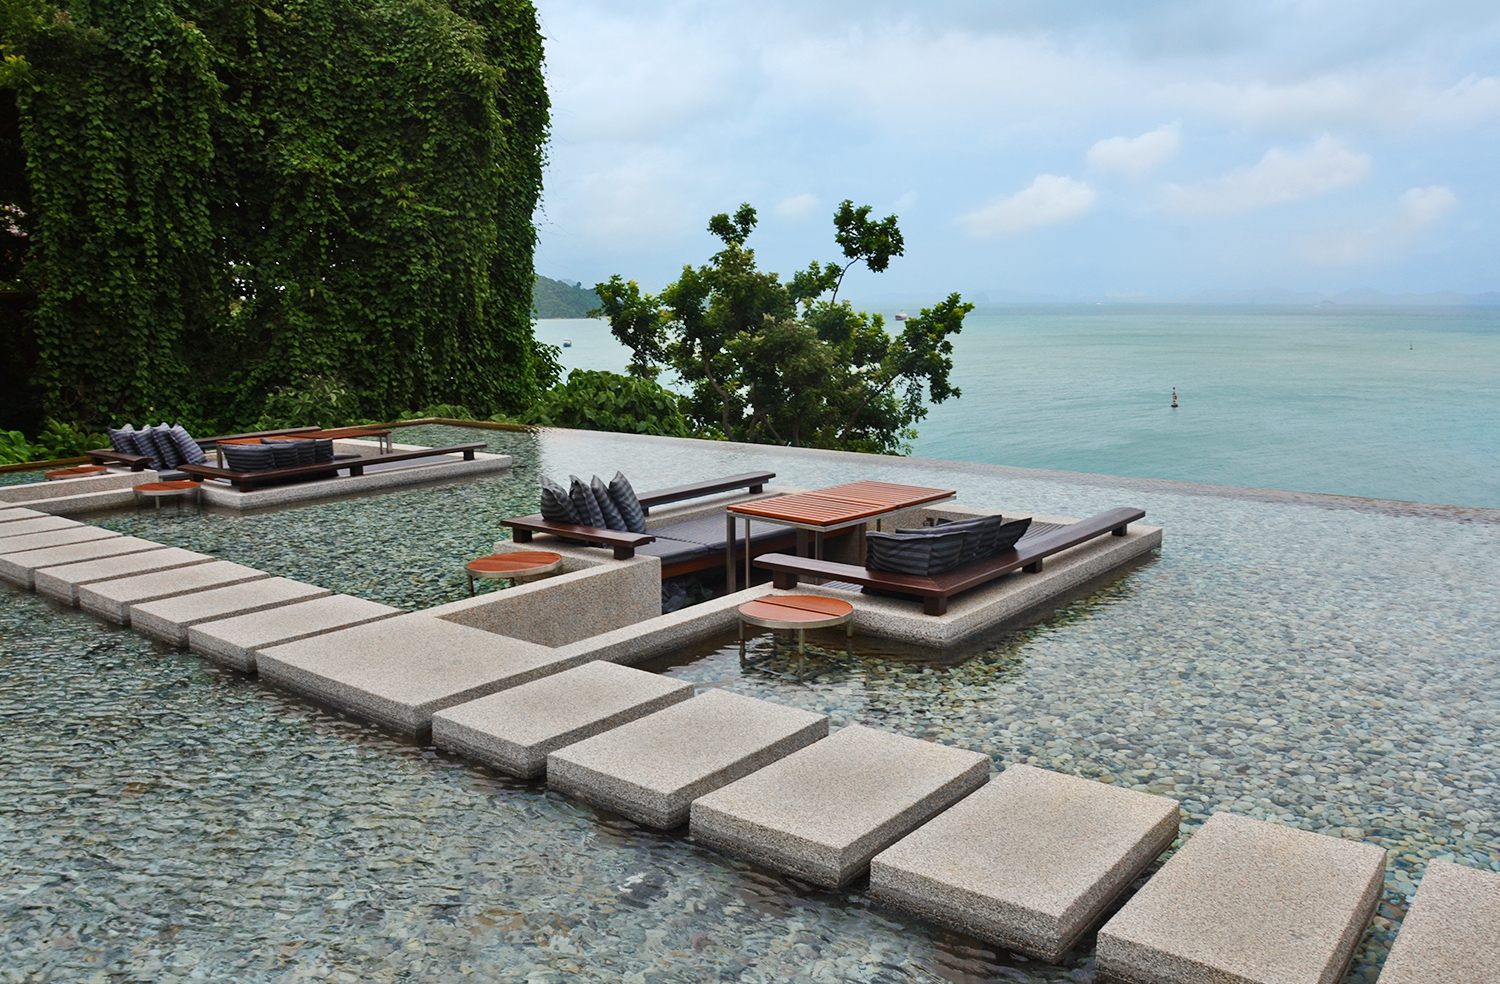 Sri Panwa Baba Pool Club, Phuket luxury resort